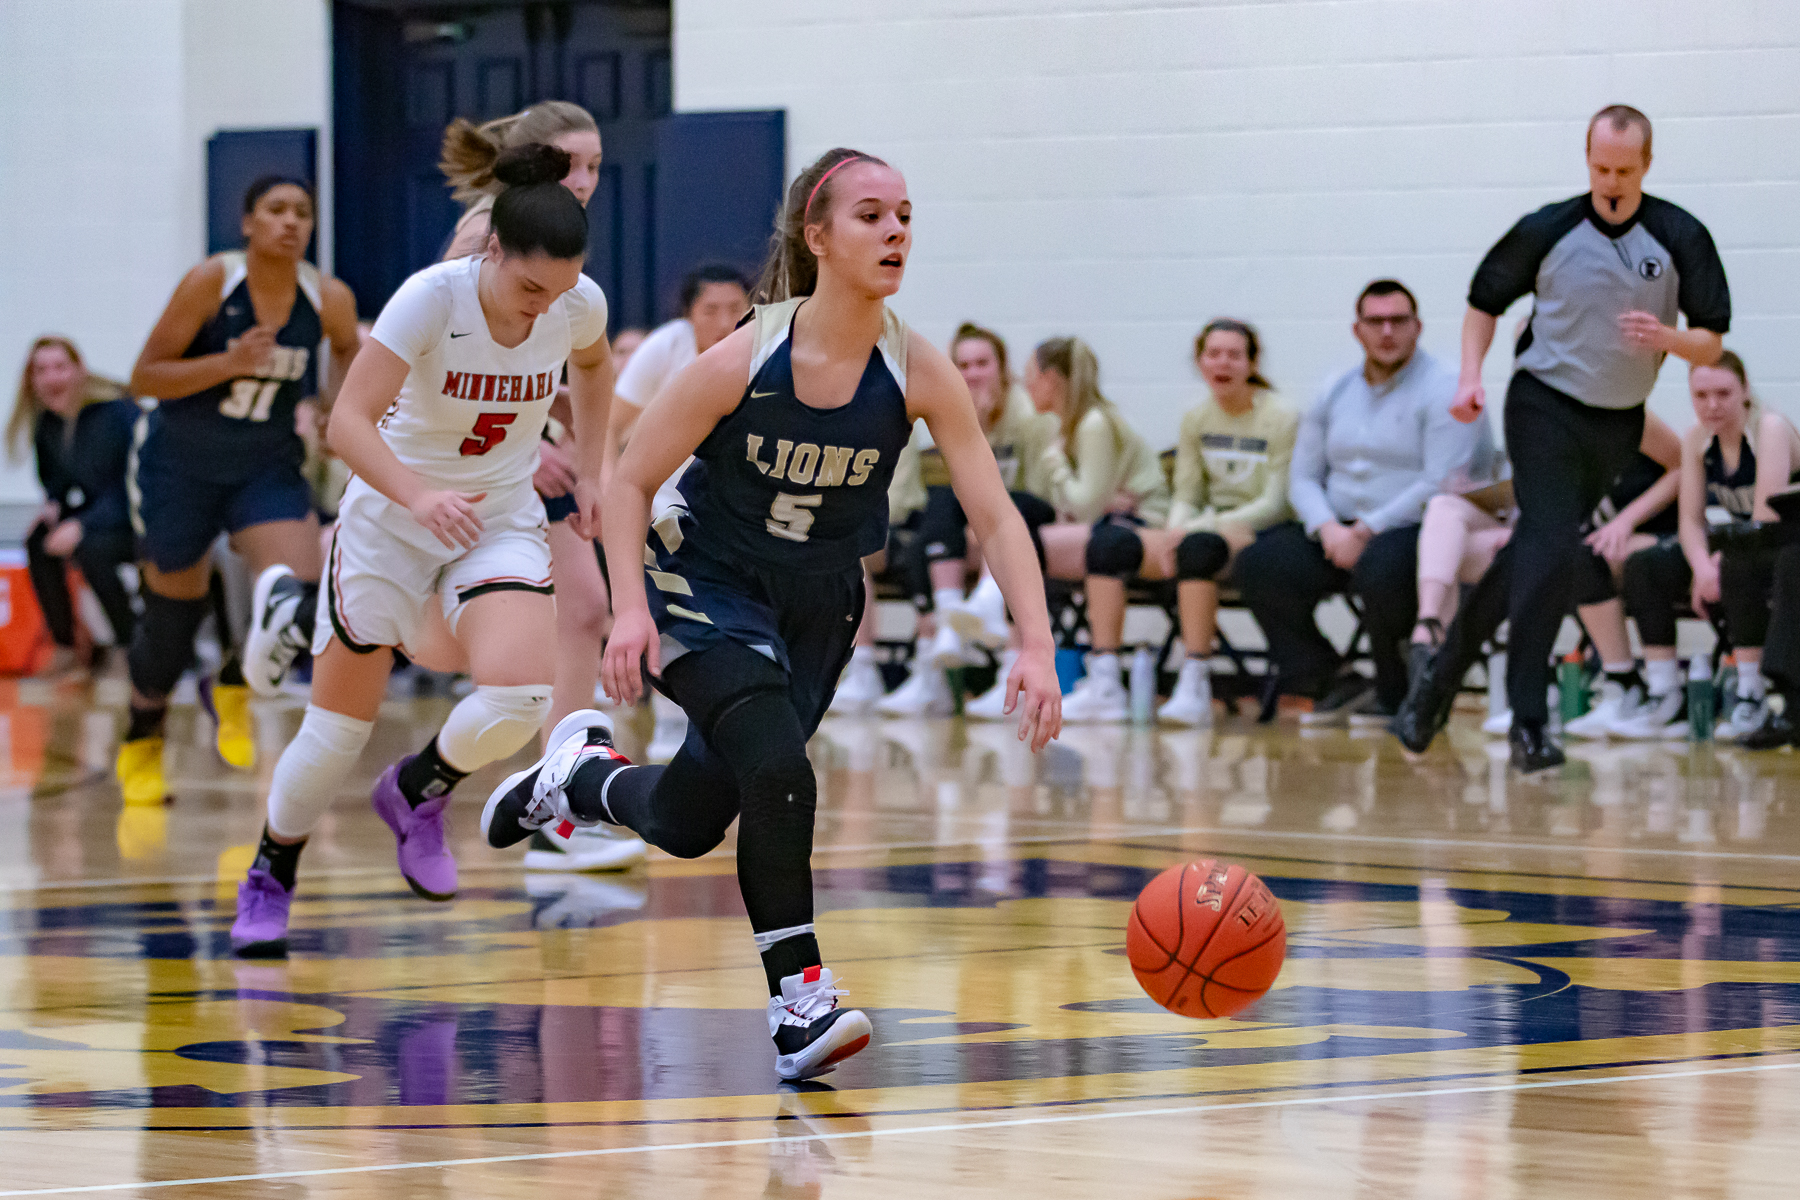 Providence Academy's Hailey Hohenecker (5) steals the ball and scores two of her 18 points. Hohenecker and the Lions defeated visiting Minnehaha Academy 59-38 Tuesday Night. Photo by Gary Mukai, SportsEngine